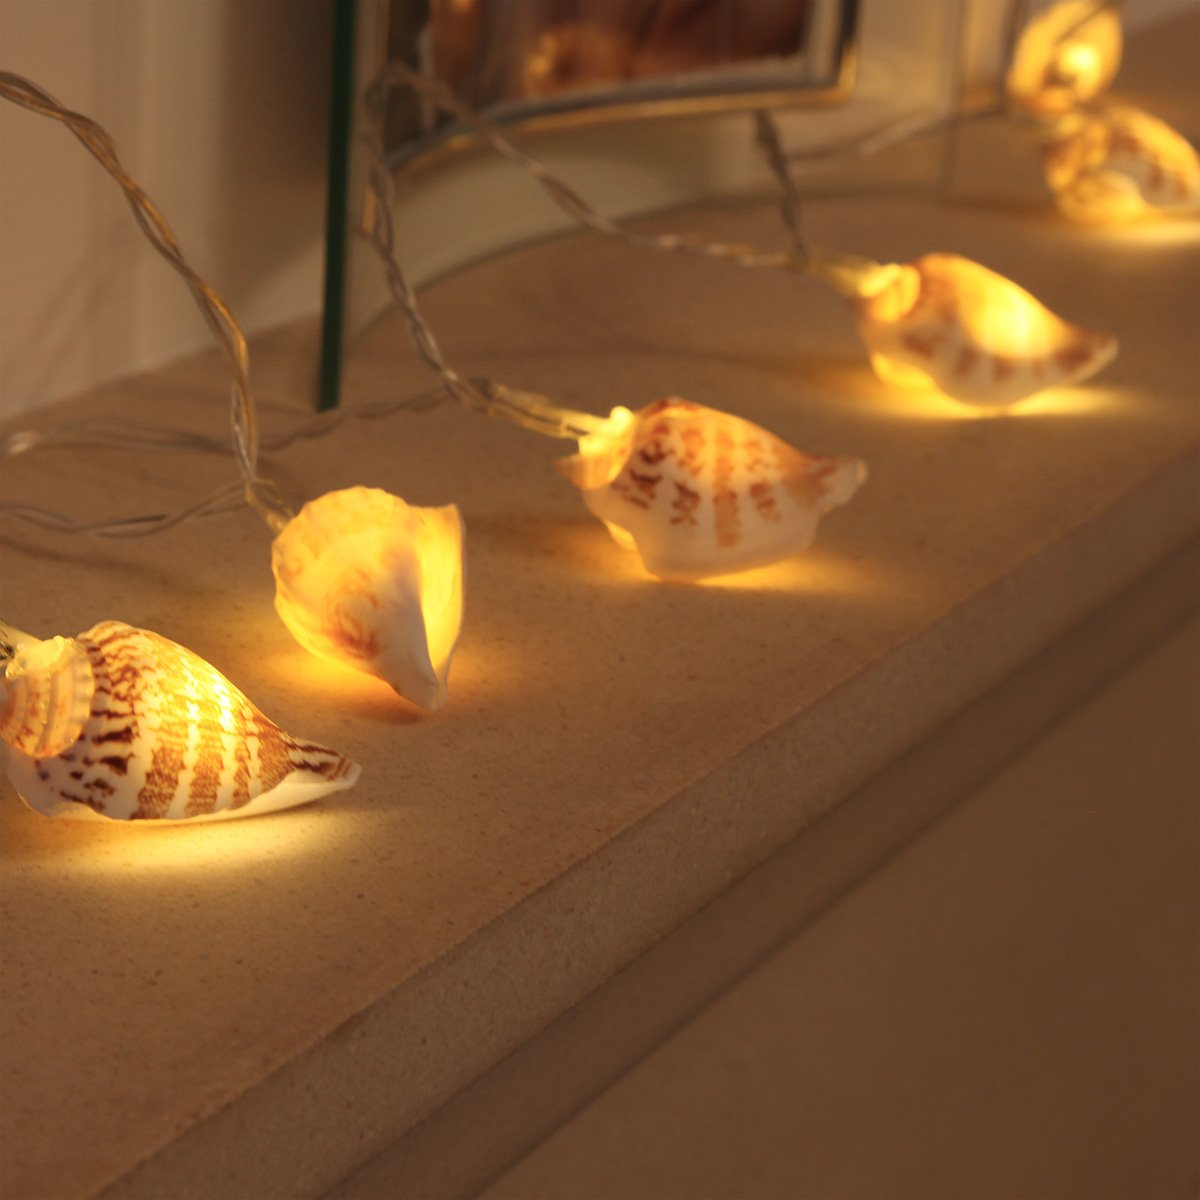 Sea shell fairy lights battery operated 10 warm white leds sea shell fairy lights battery operated 10 warm white leds real shells timer by festive lights amazon kitchen home mozeypictures Gallery